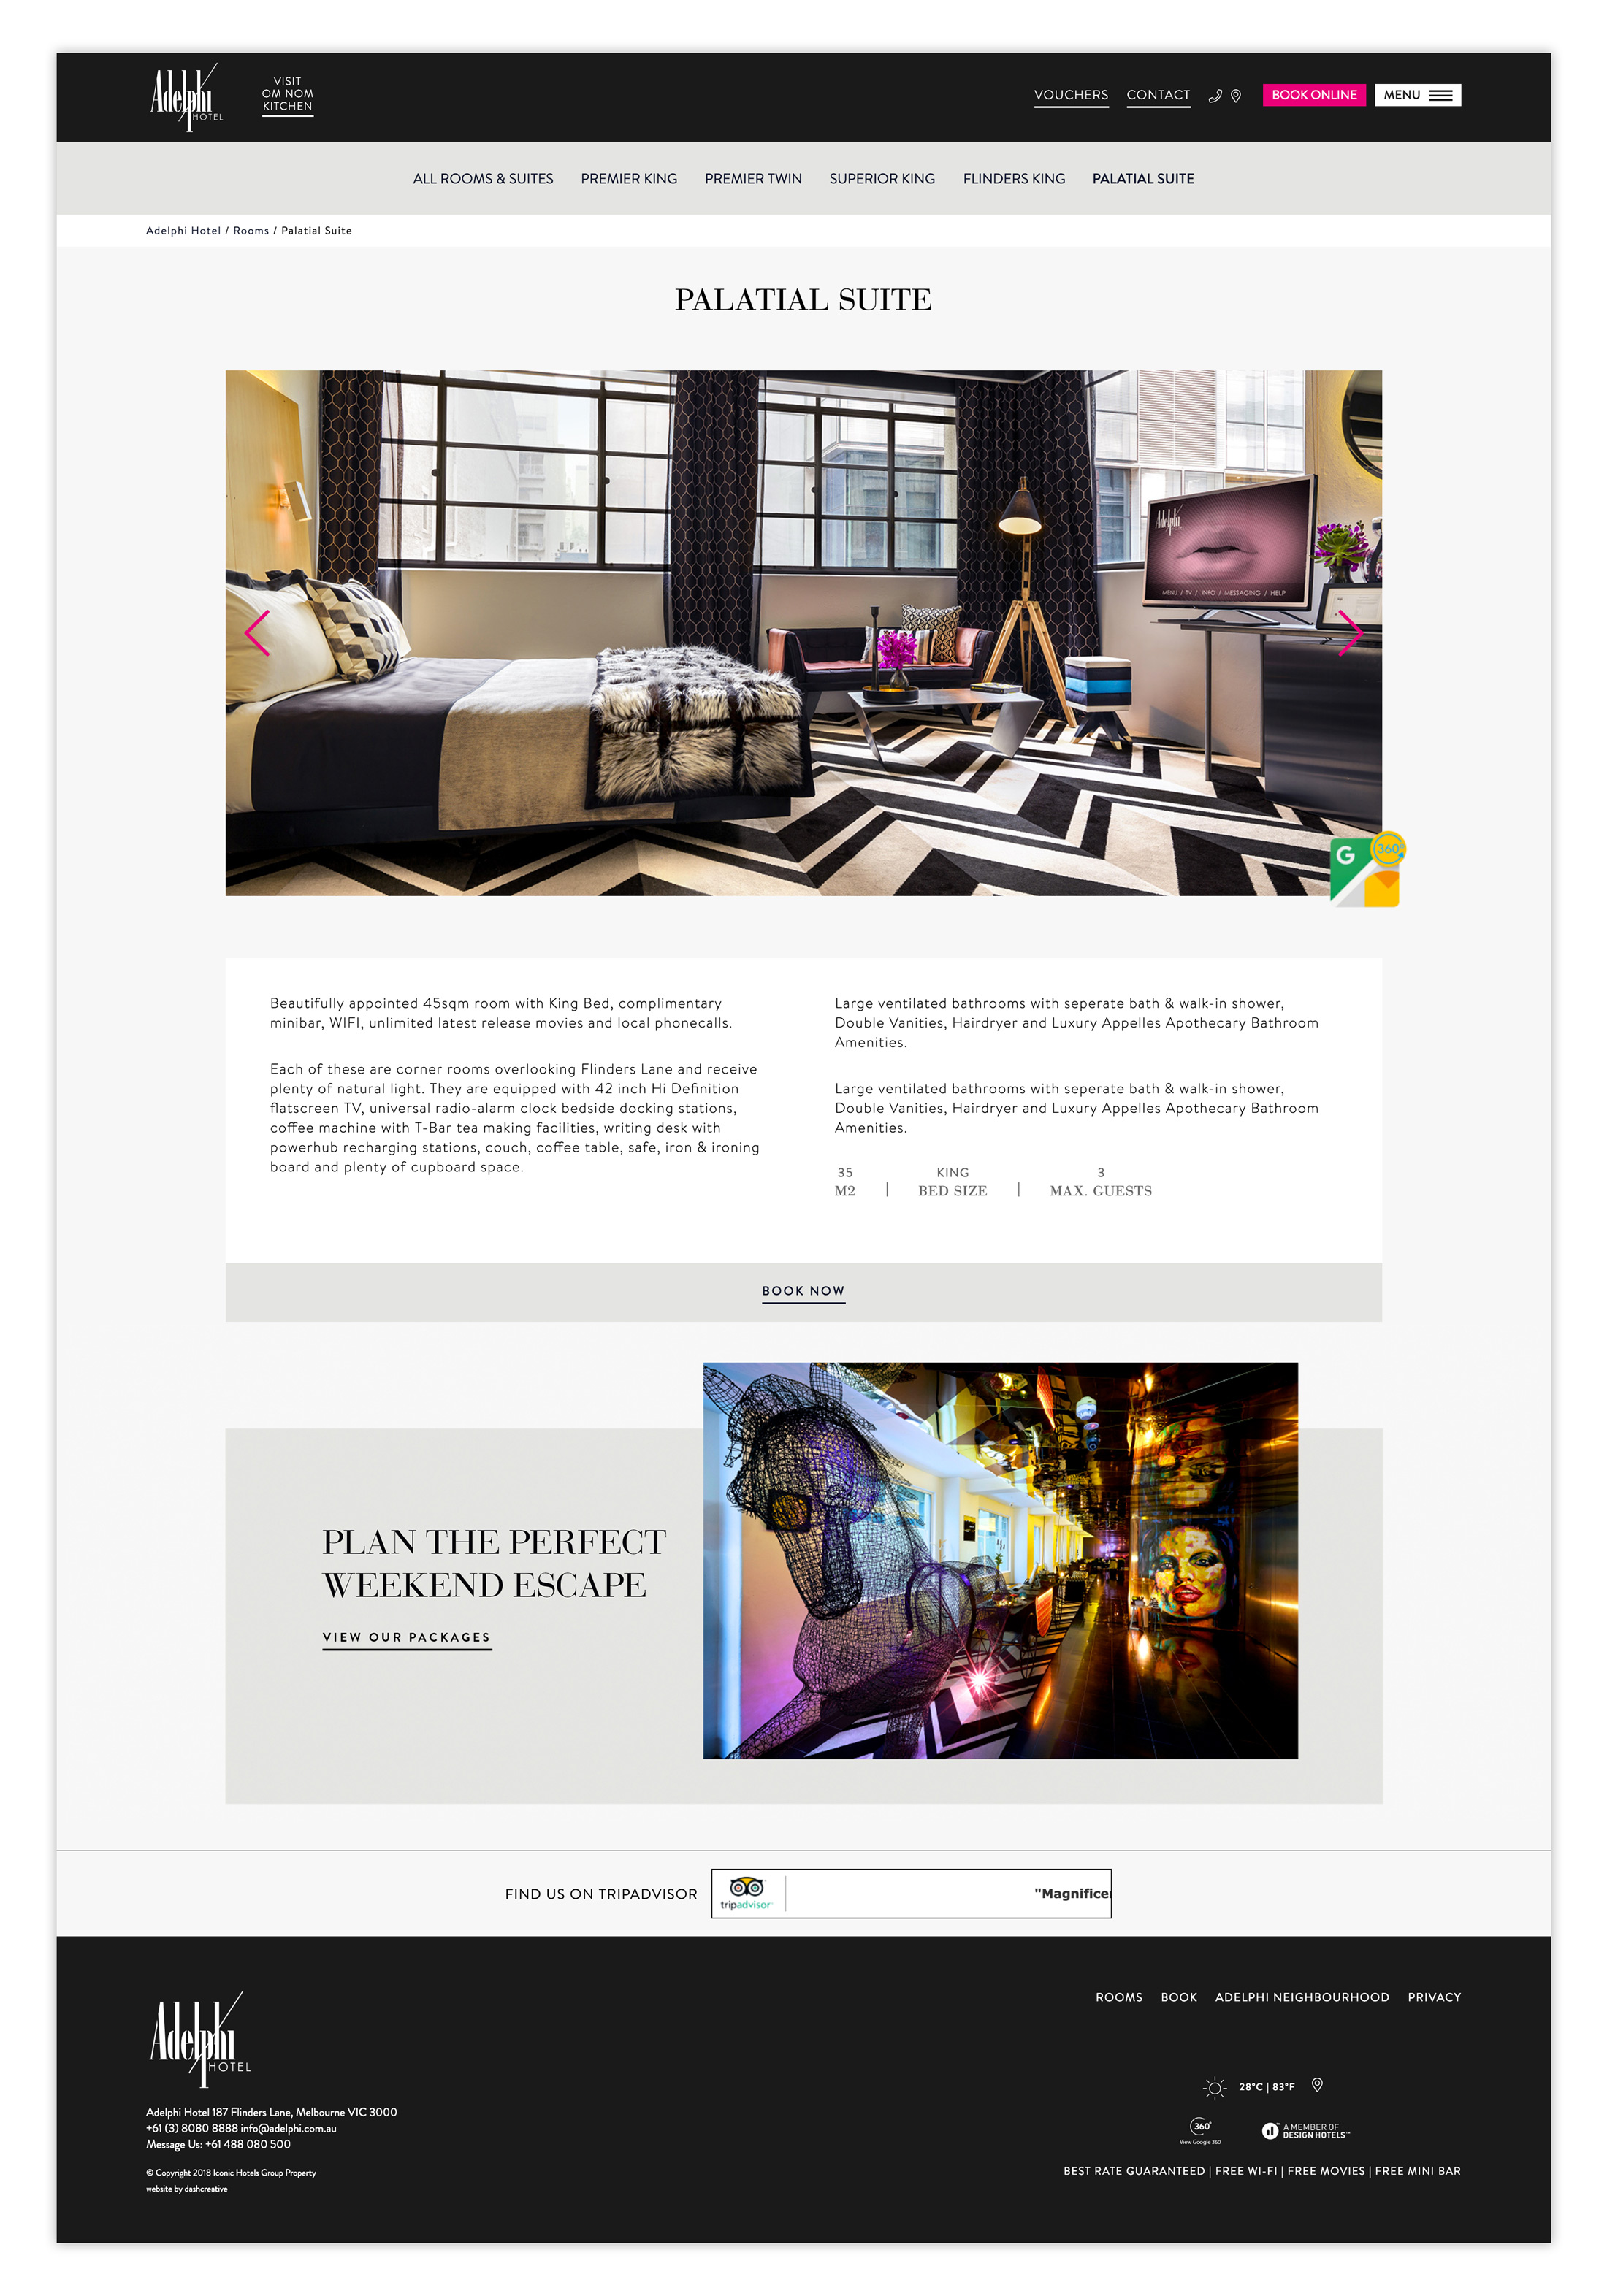 Adelphi Hotel - Website Design